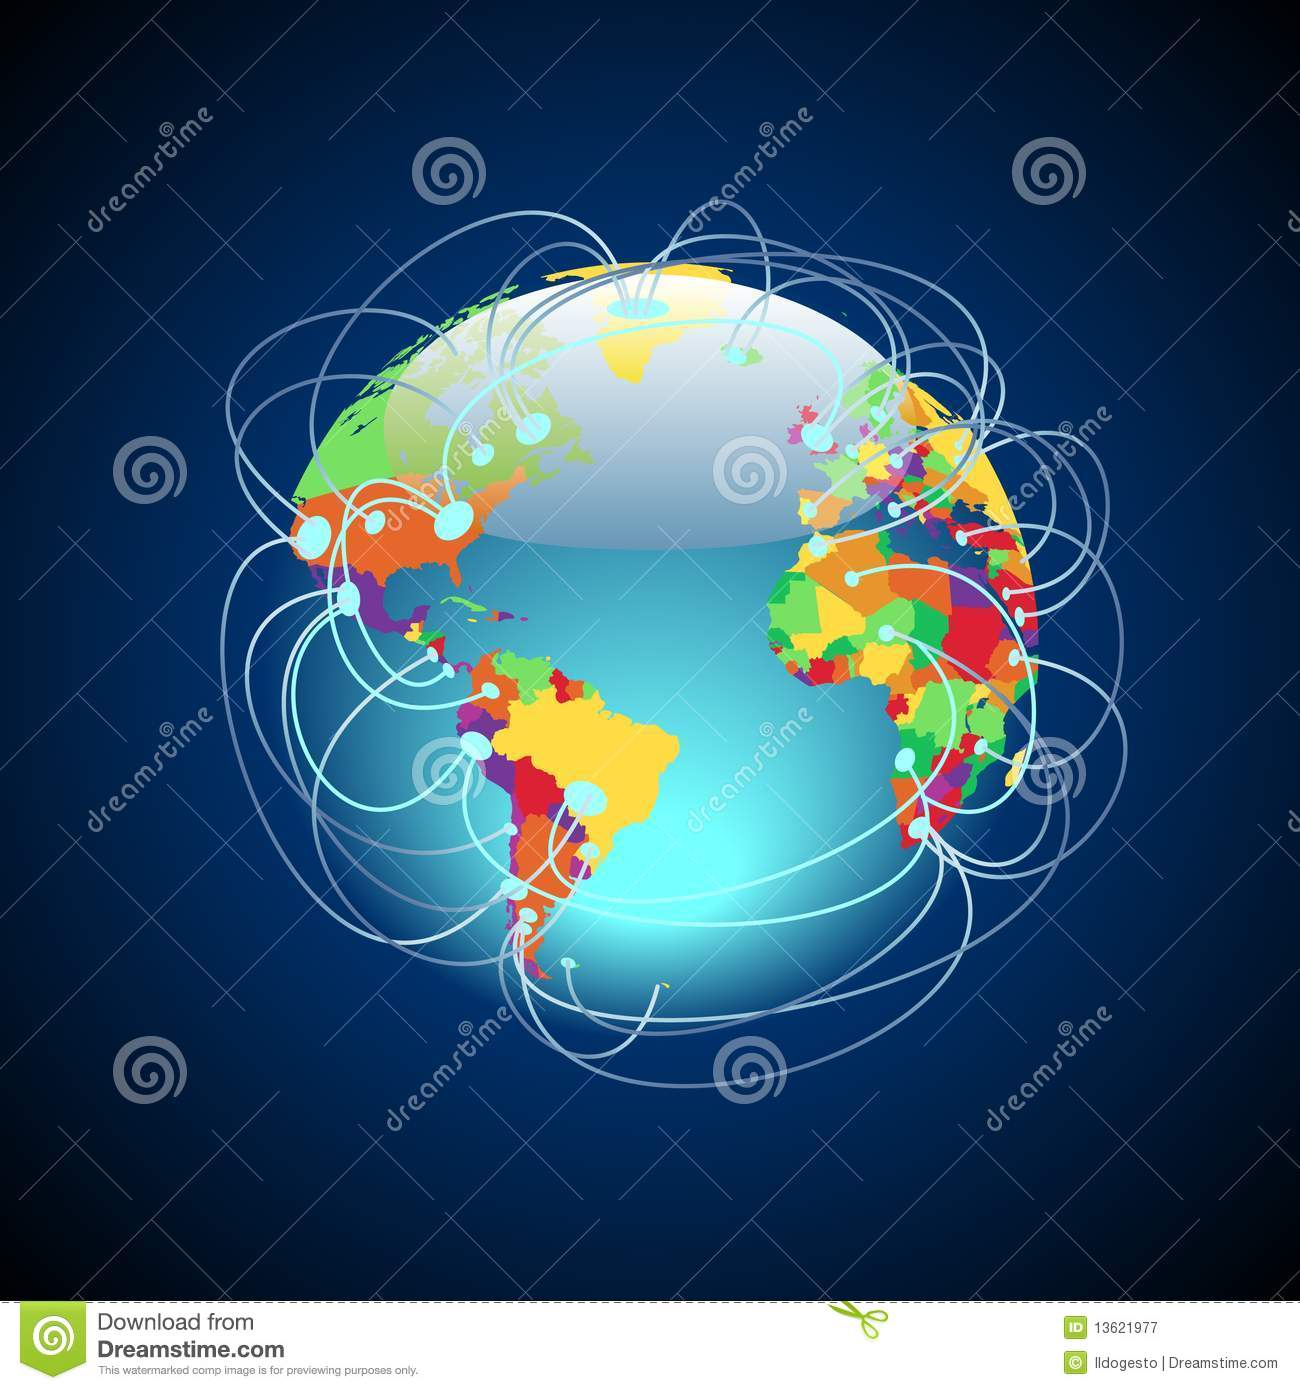 Worldwide Connections Colorful Royalty Free Stock ... Colorful Connections